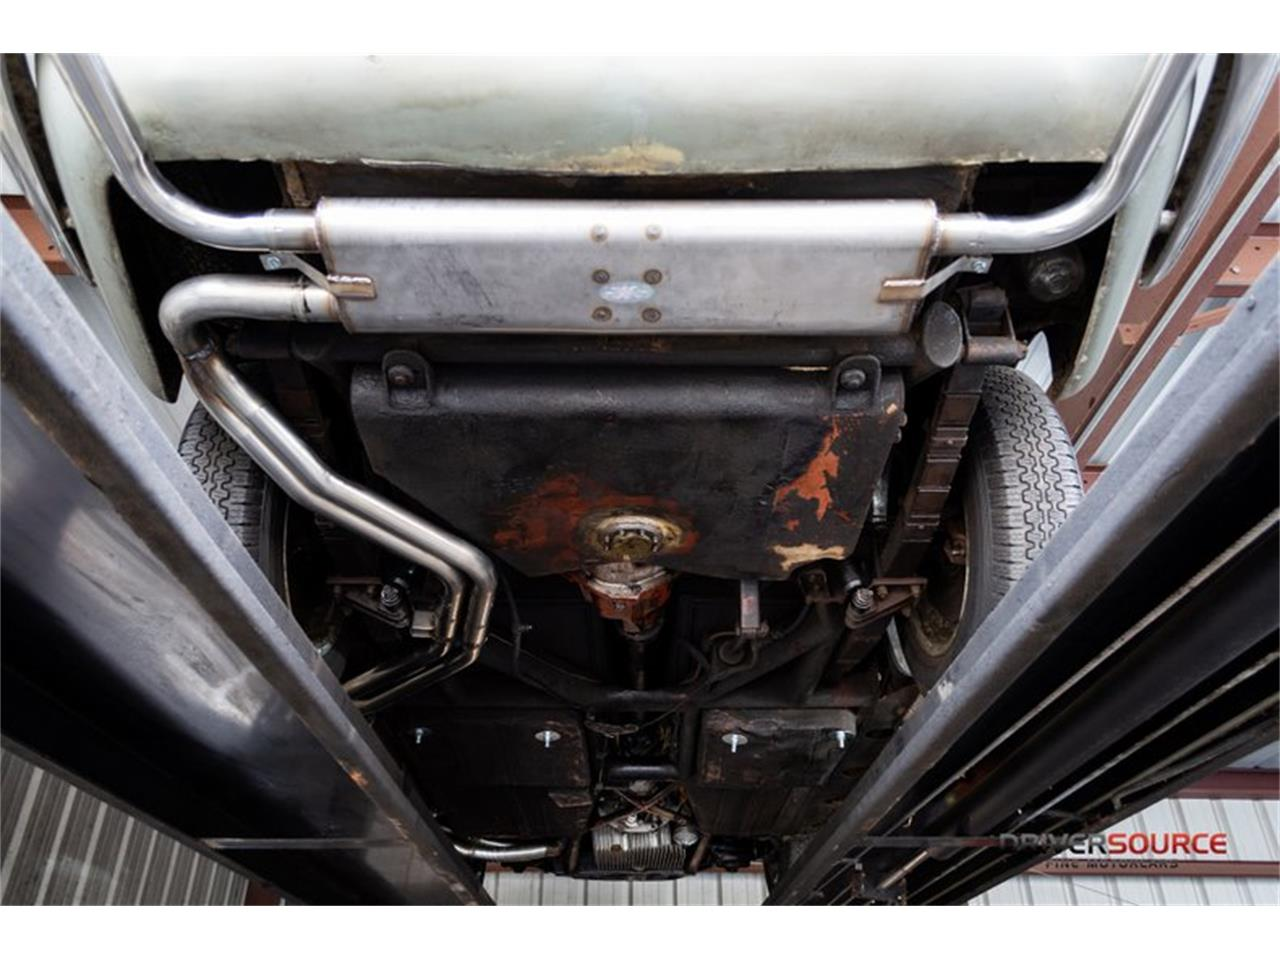 Large Picture of Classic '62 3500 located in Texas Offered by Driversource - OCR7